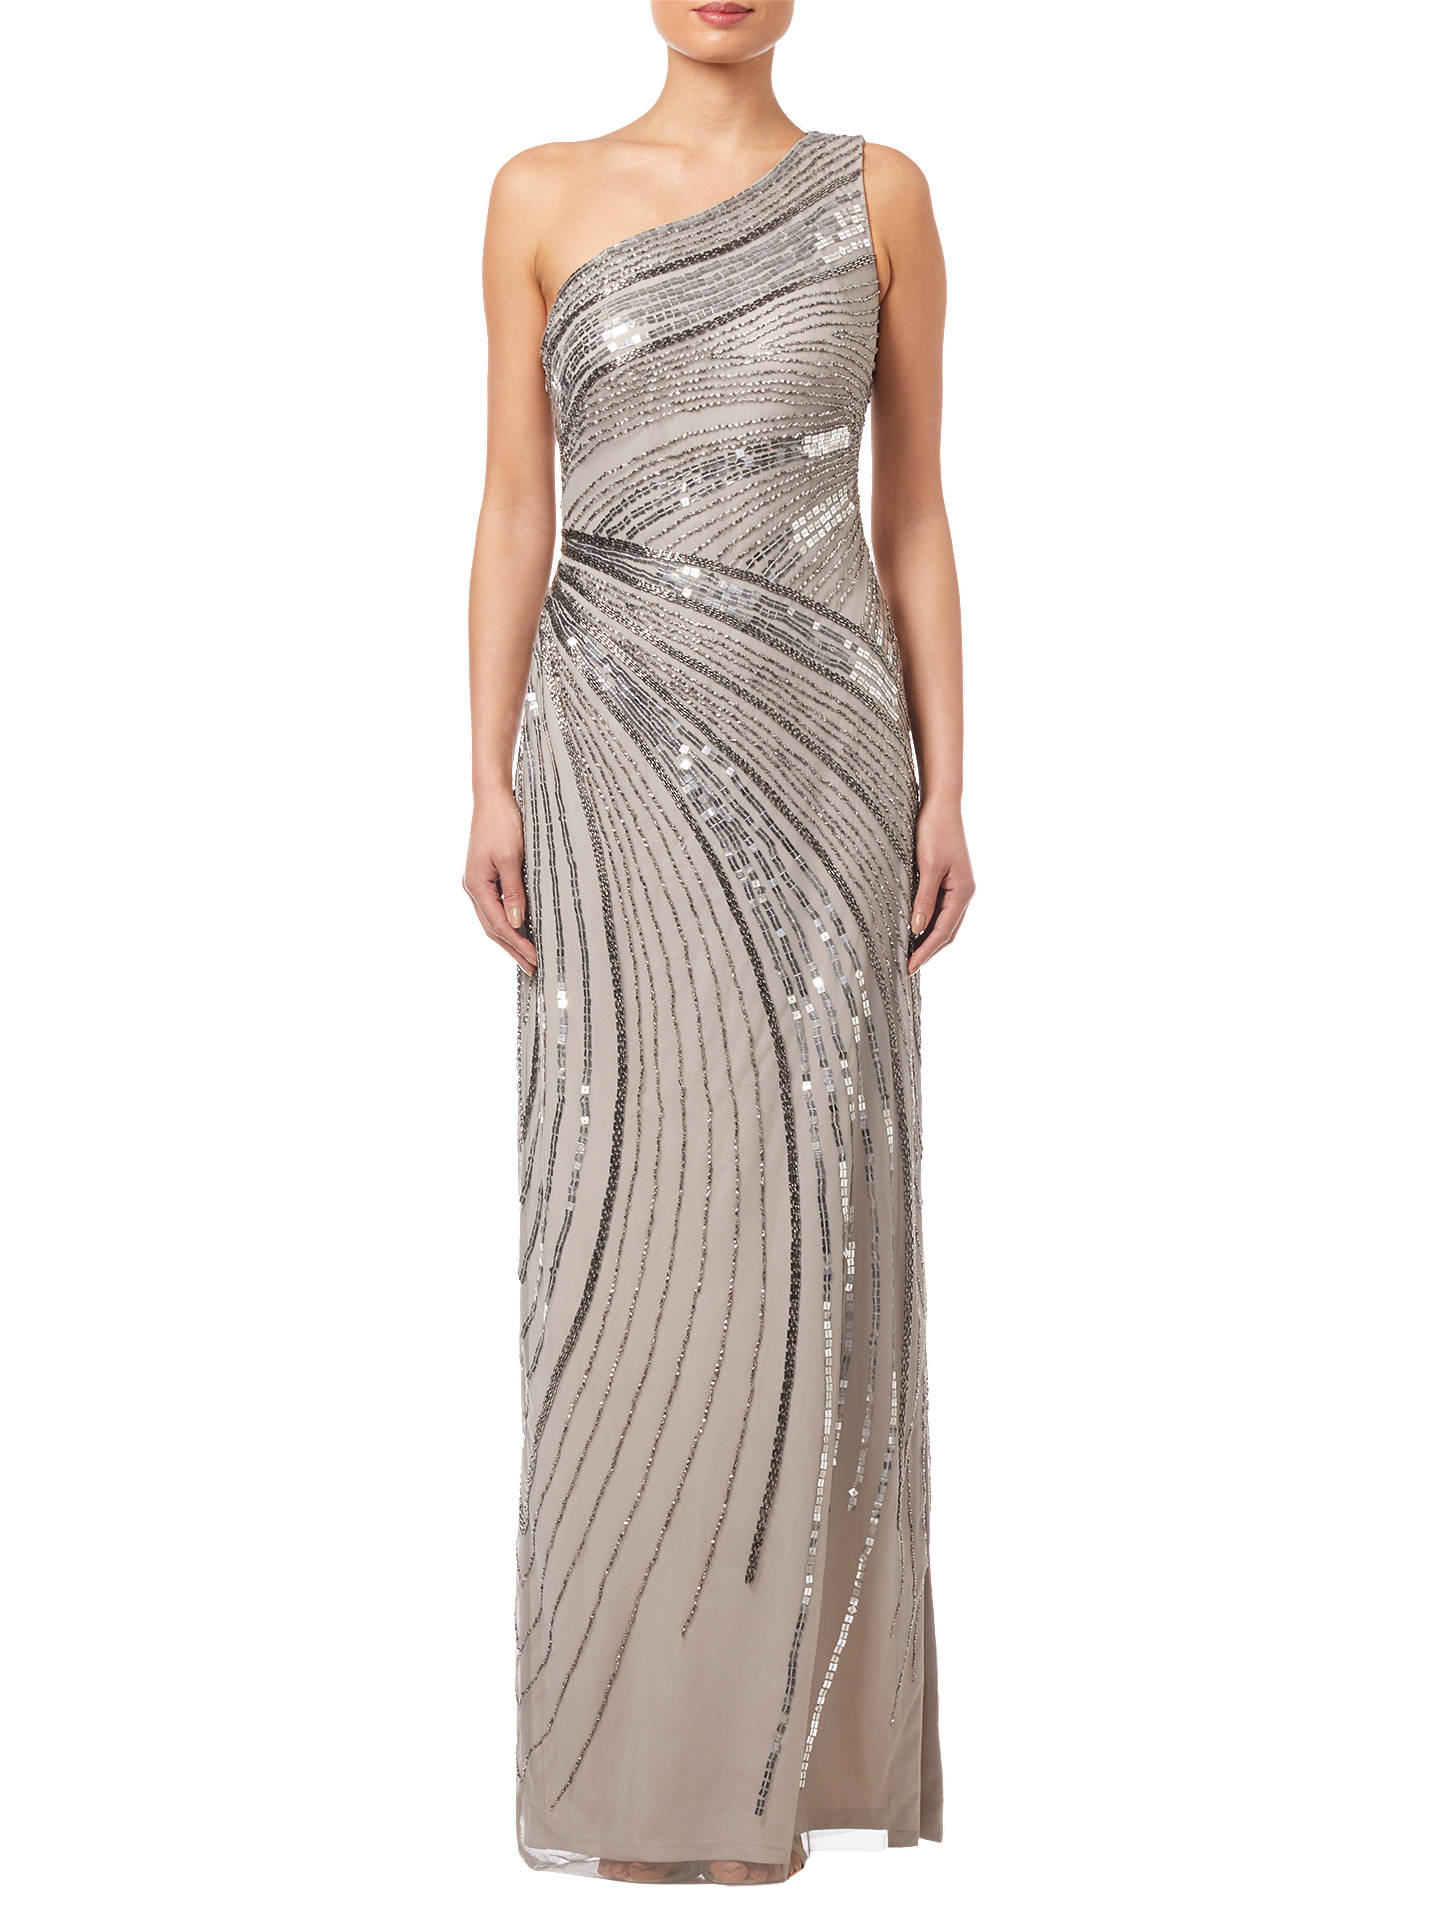 5a3ffe01eb5 Buy Adrianna Papell Beaded Column Gown